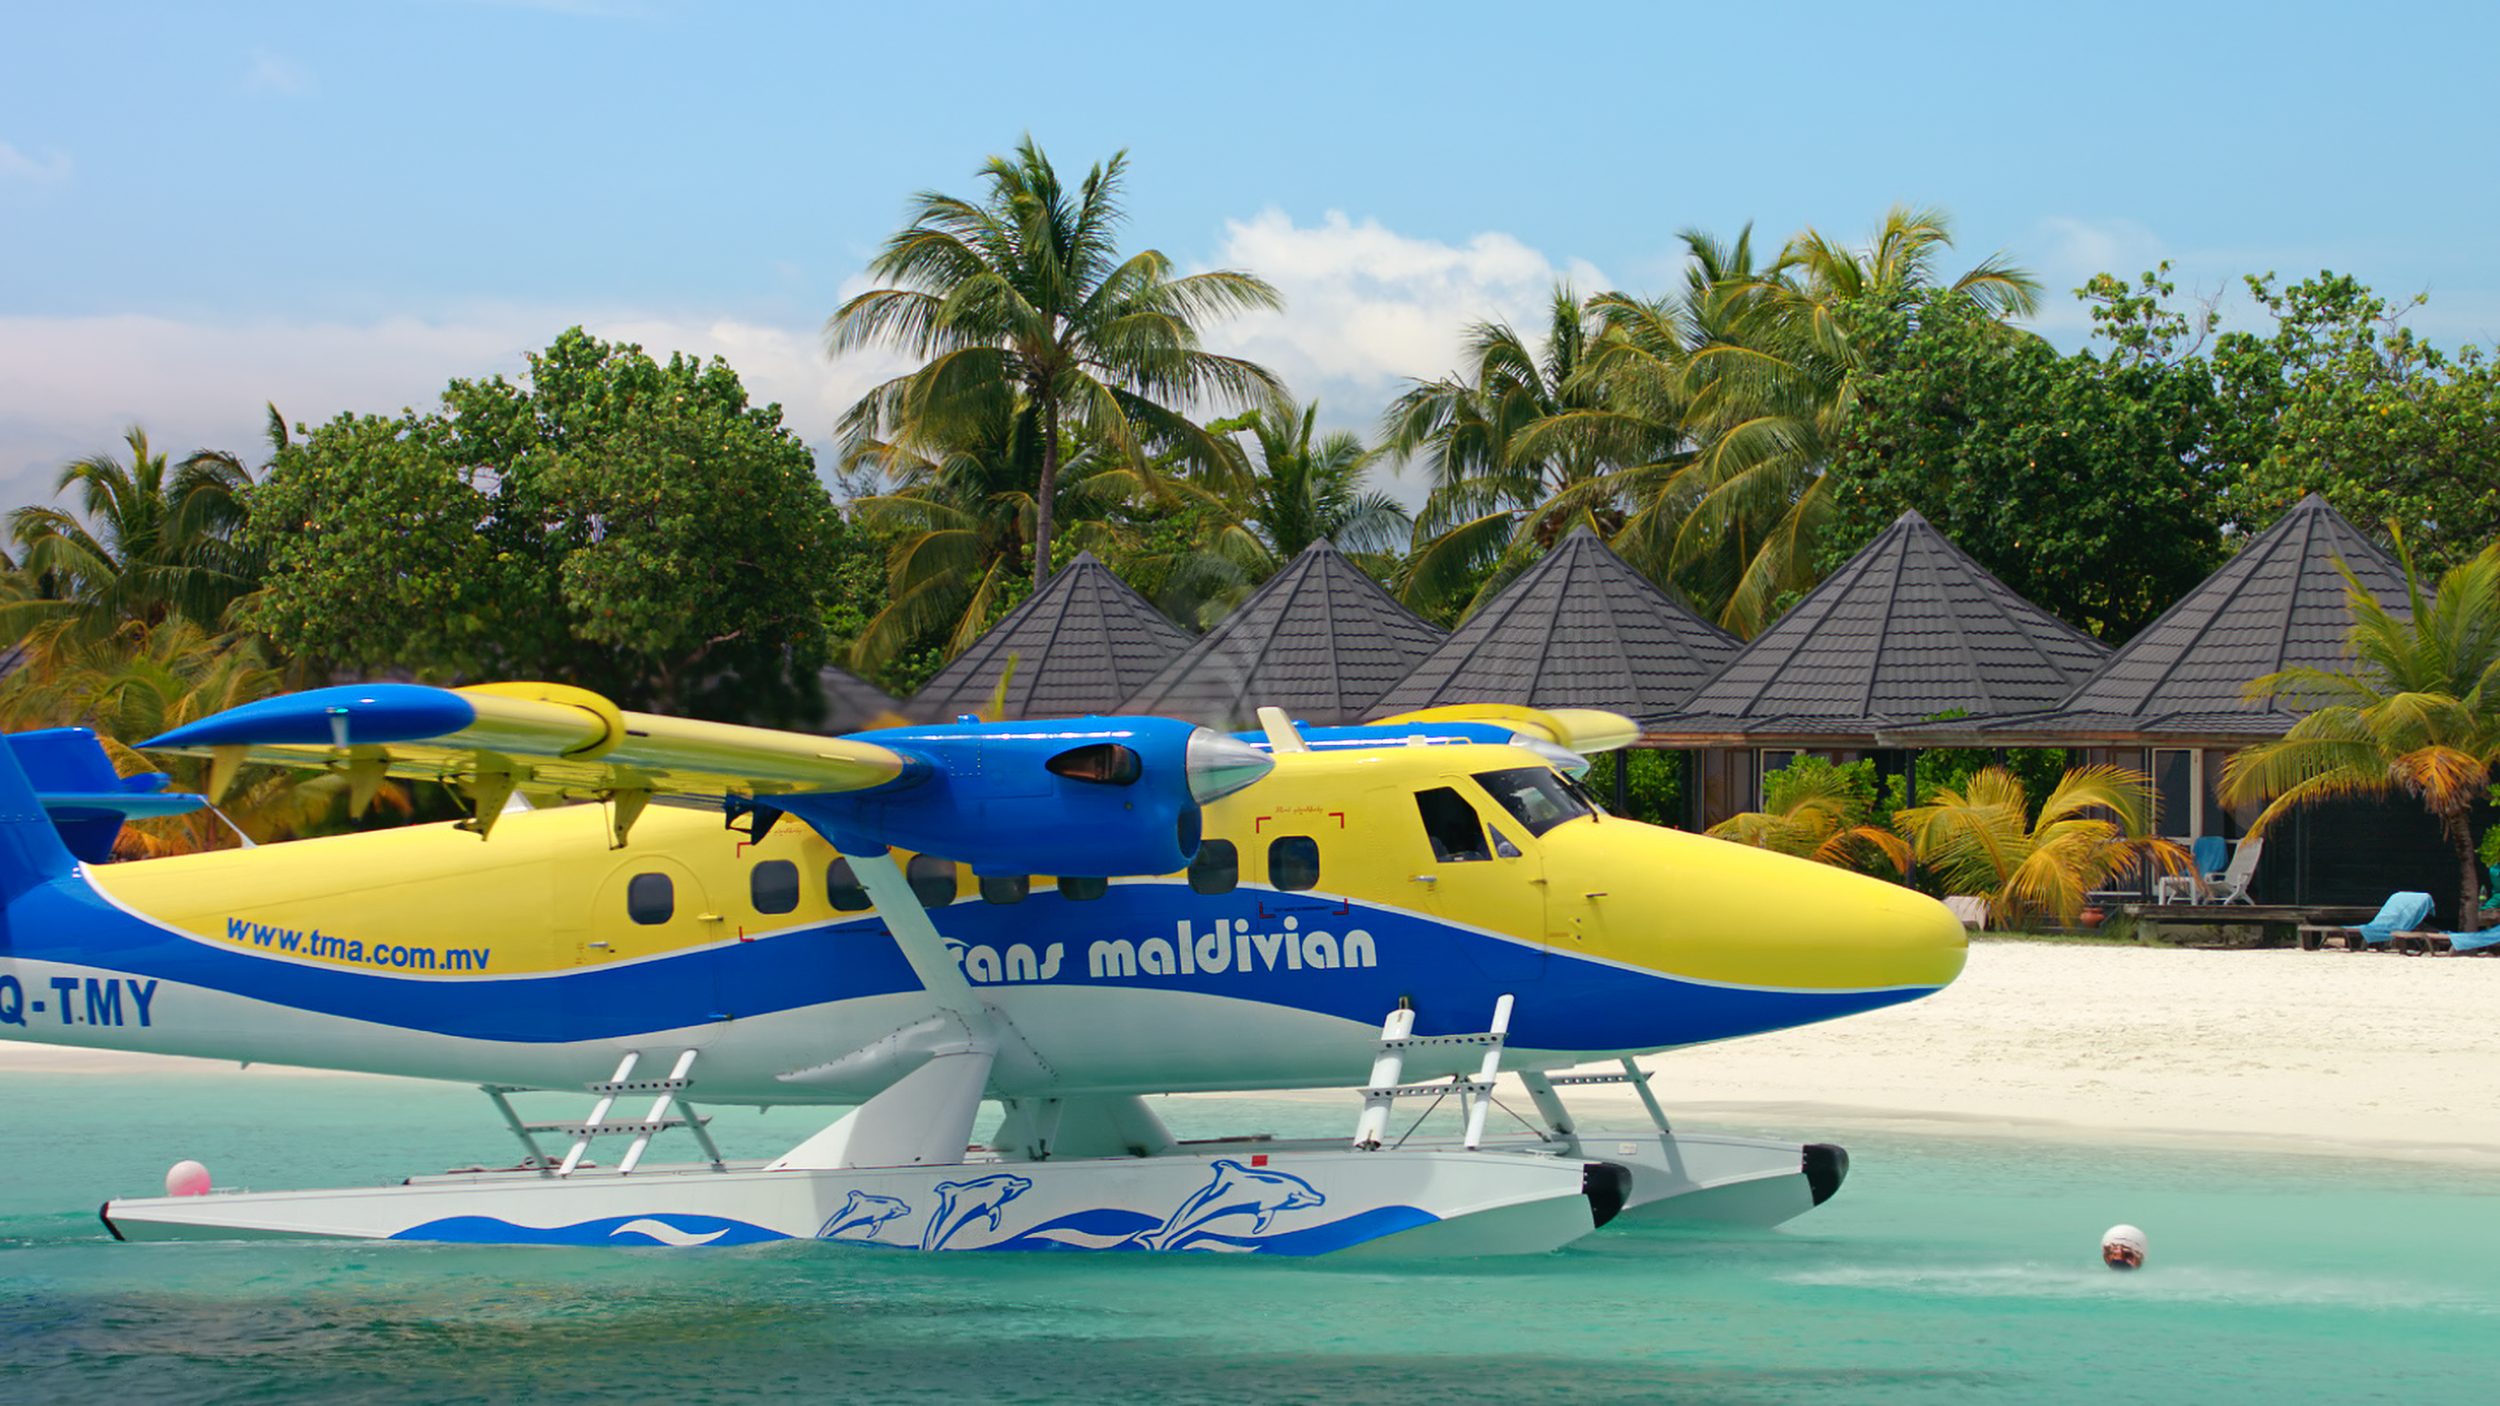 Twin Otter seaplane preparing to dock in the Maldives.